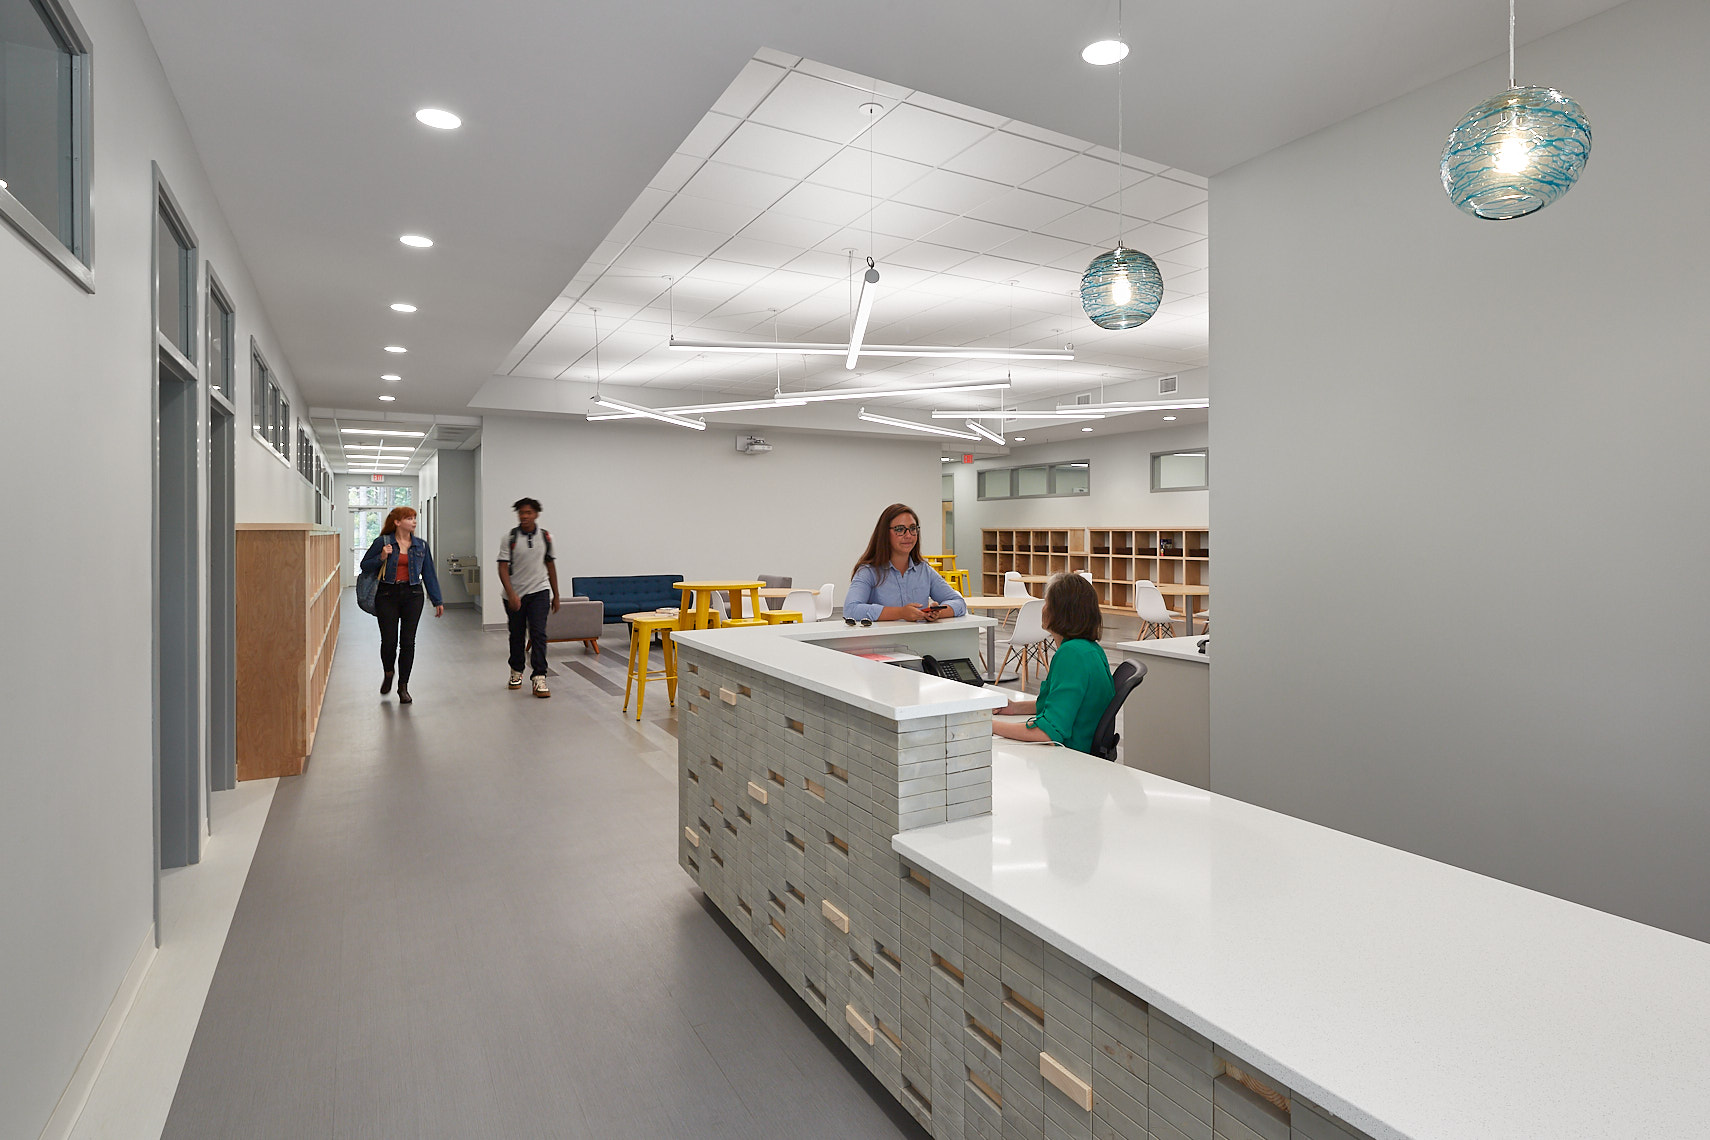 Montessori School Of Raleigh, Raleigh NC - HH Architecture, Raleigh NC